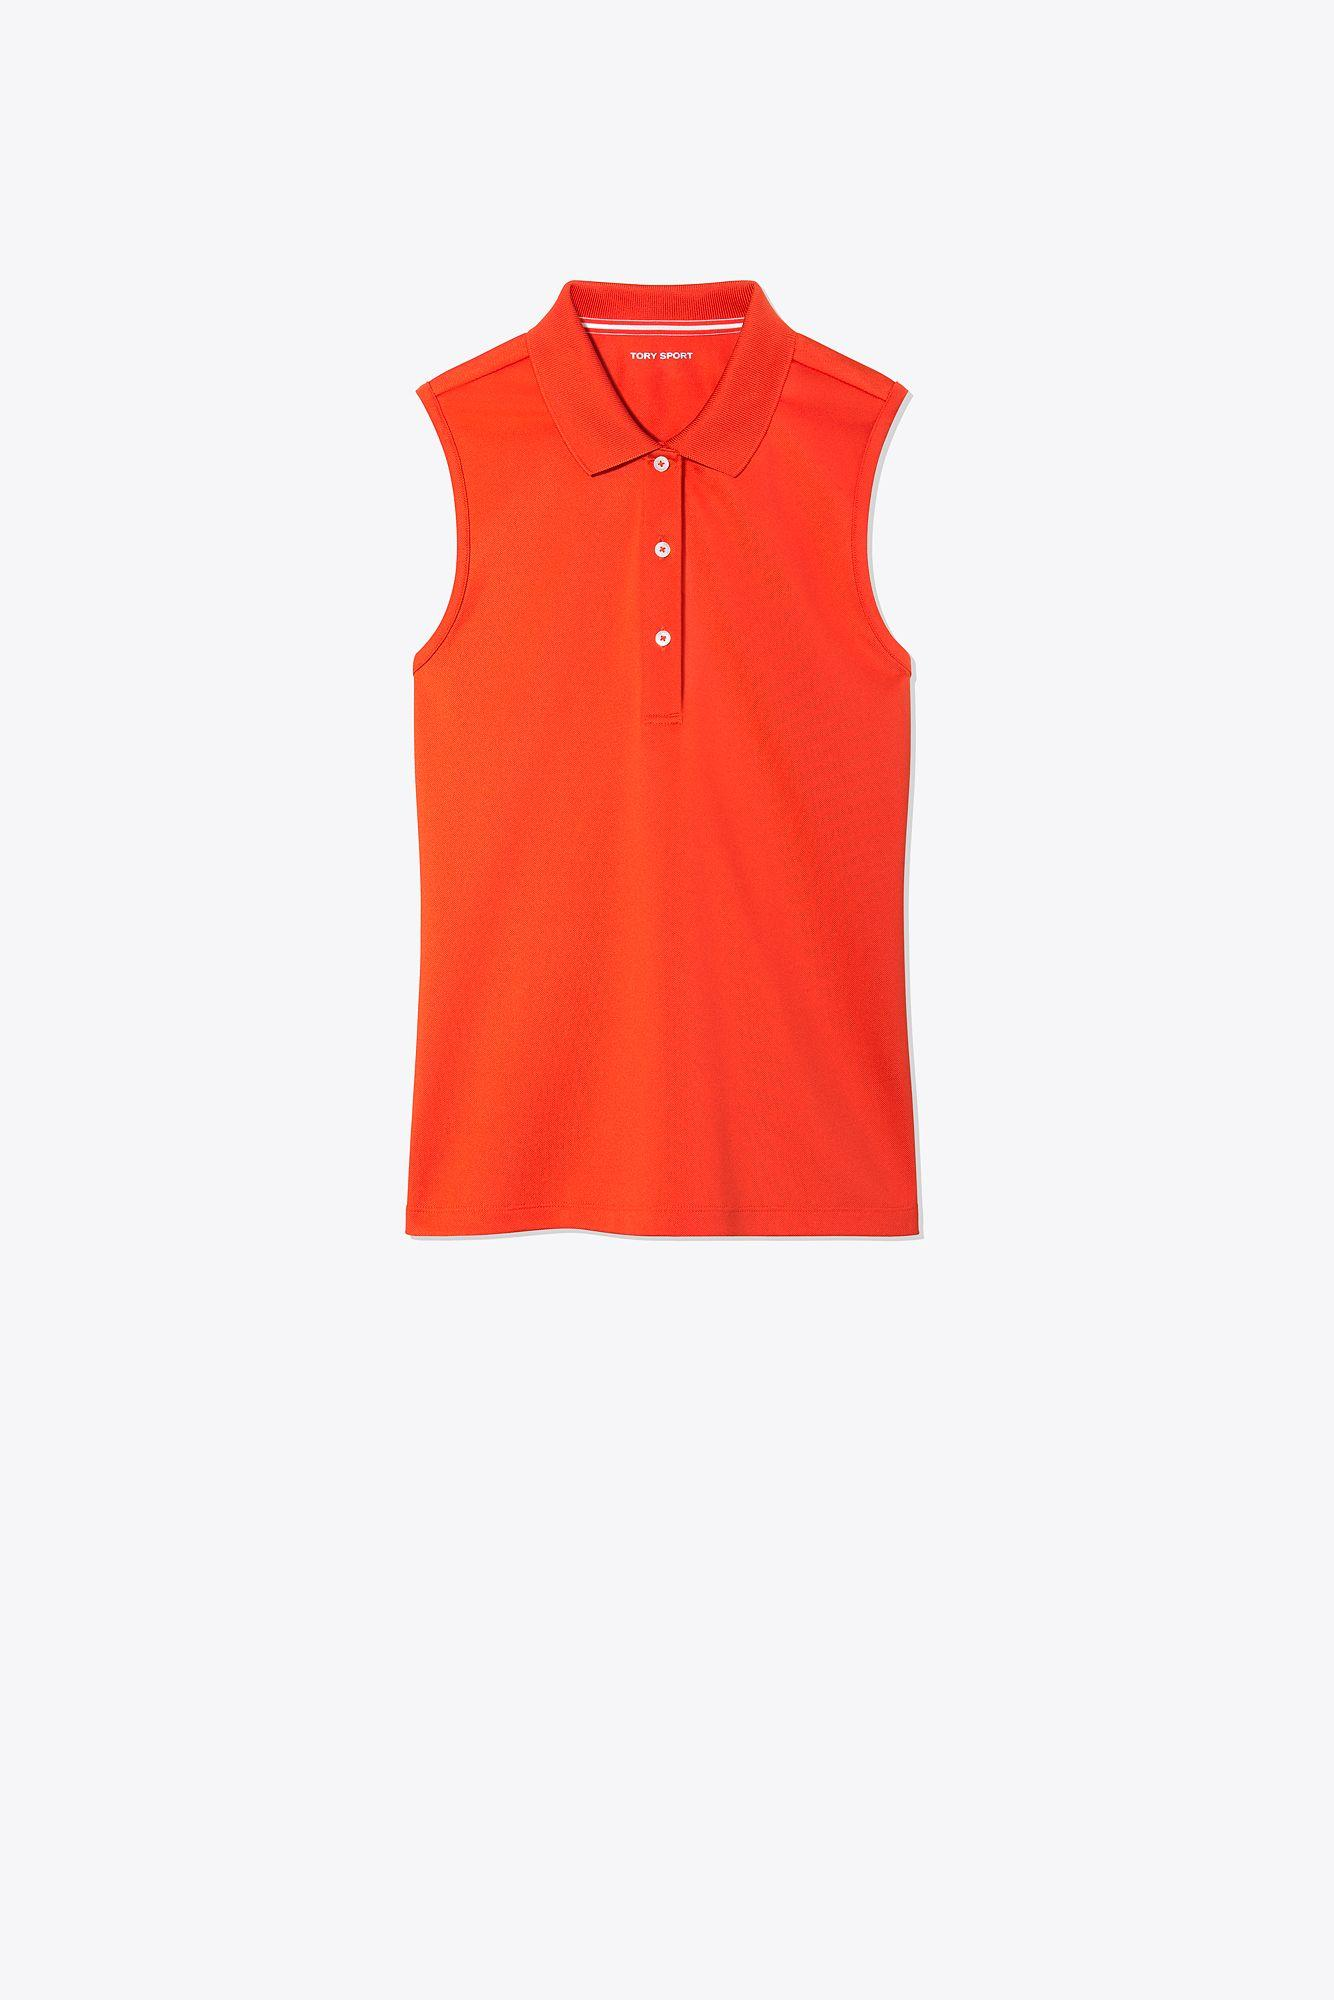 30d0ee5b85 Lyst - Tory Sport Tech Pique Sleeveless Polo in Red